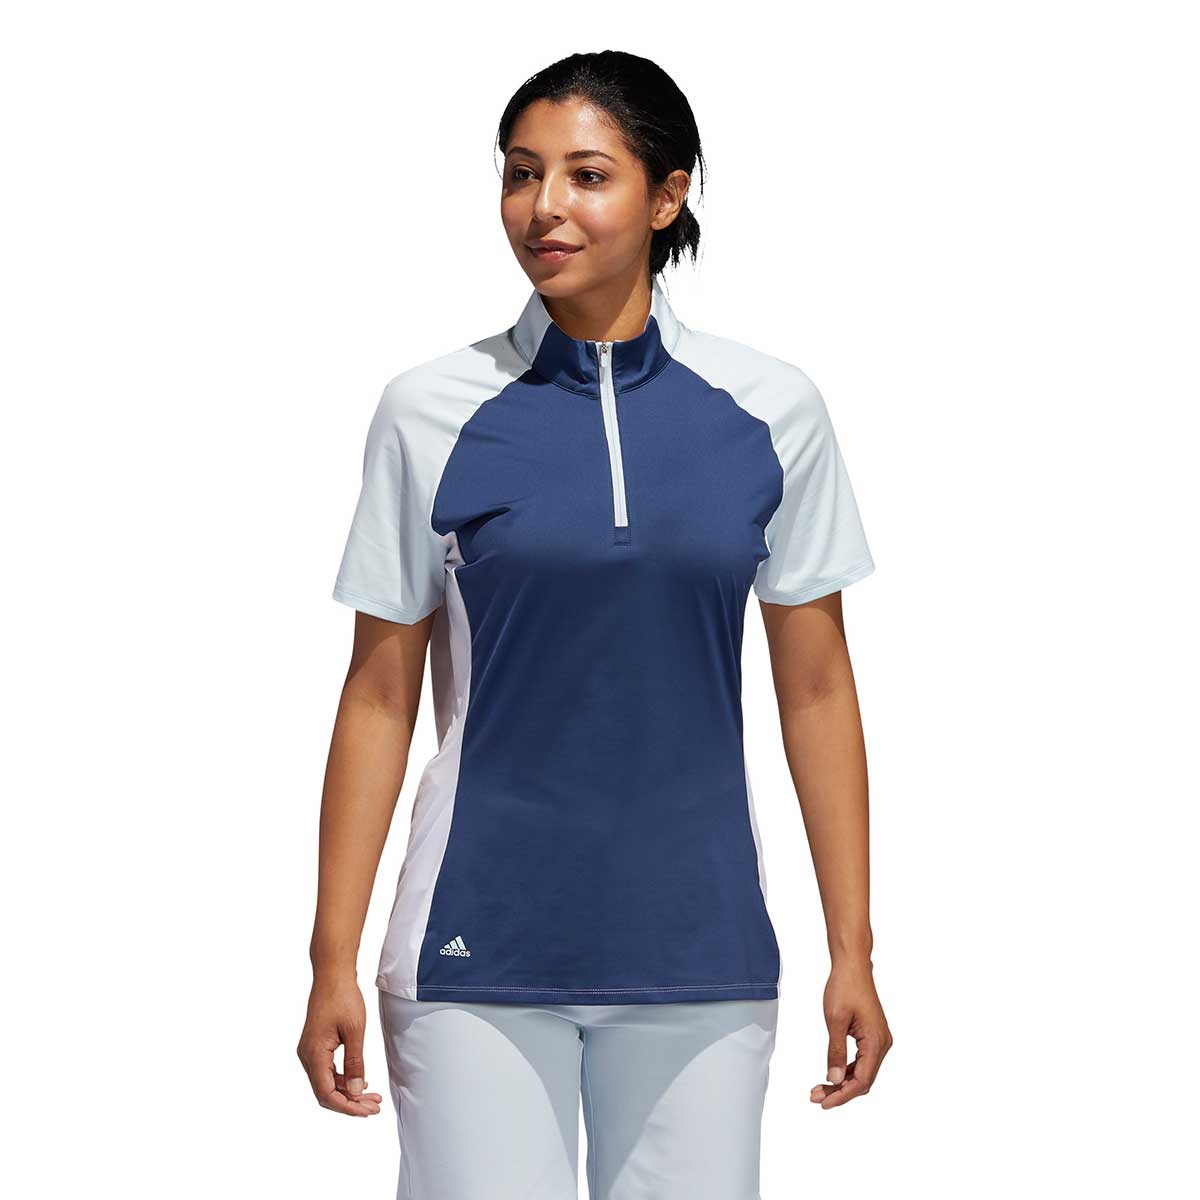 Adidas Women's Colorblock Tech Indigo Polo